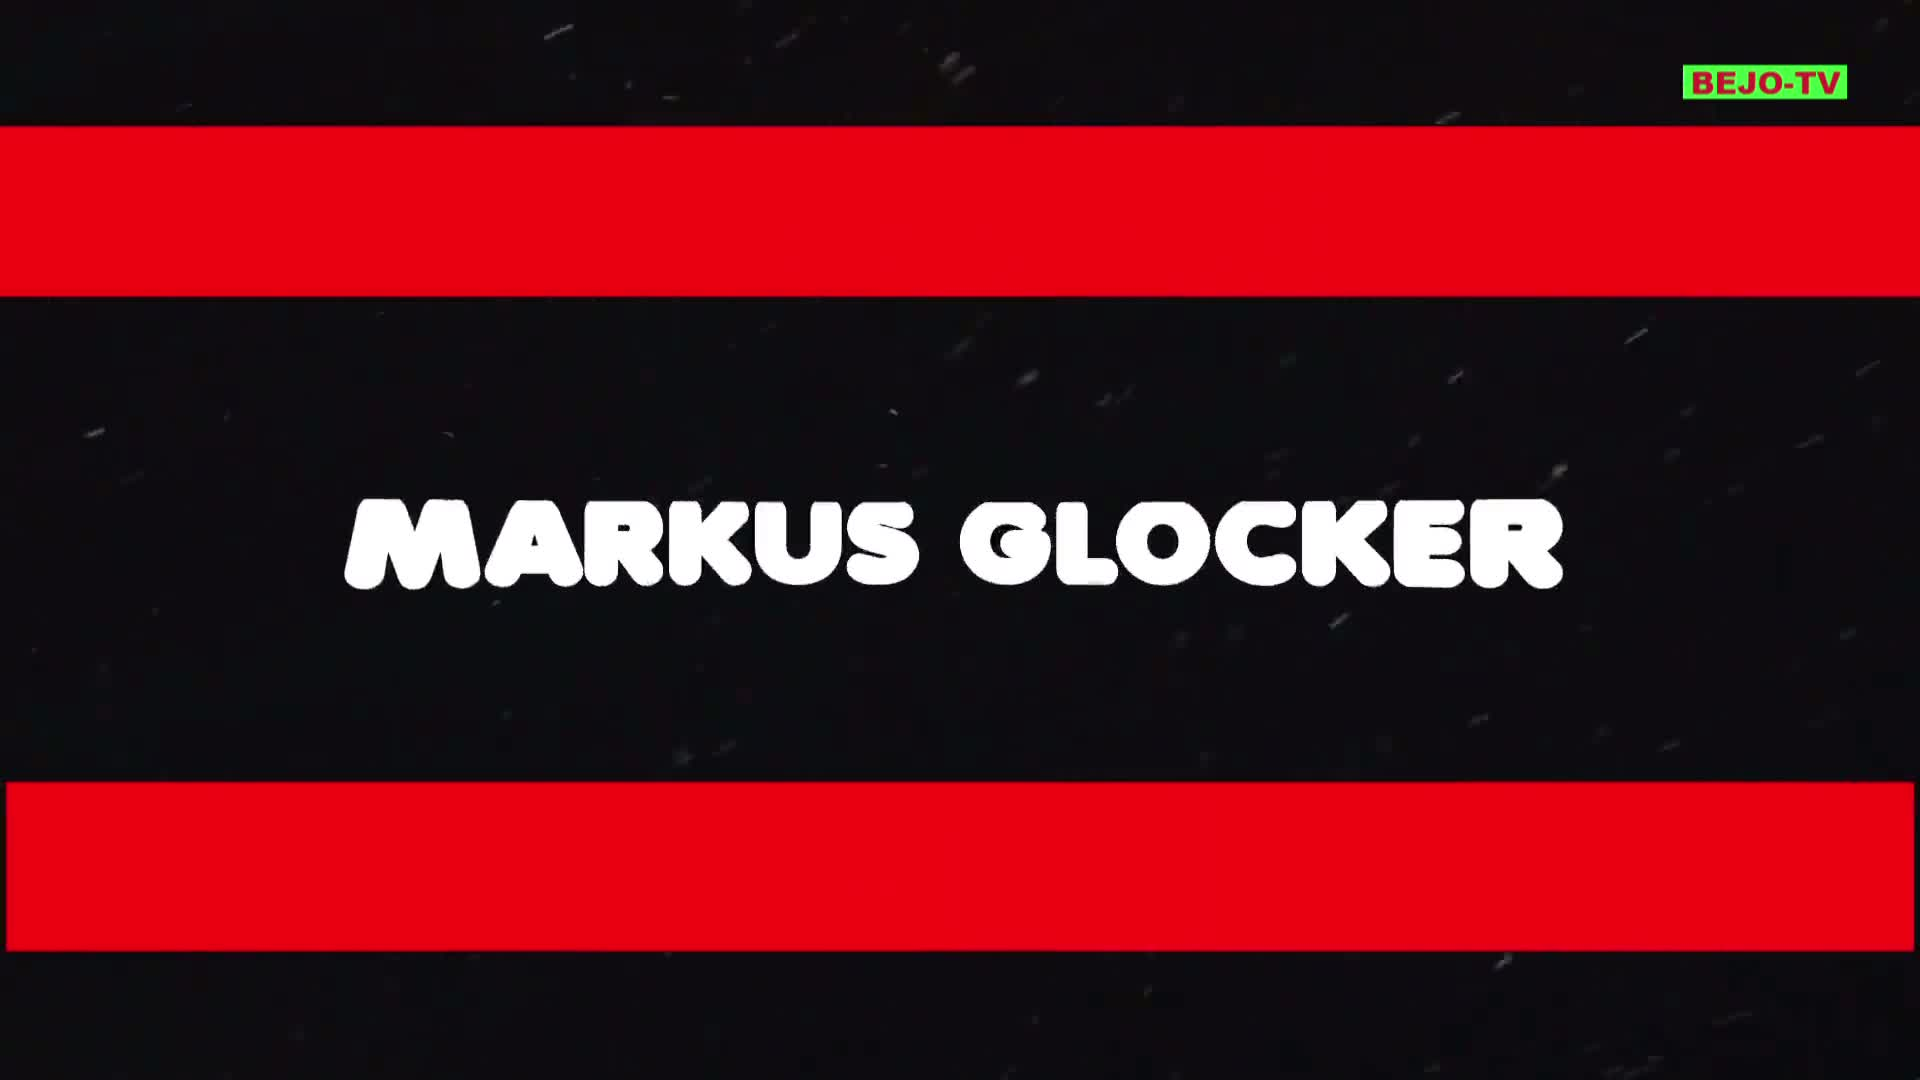 MARKUS GLOCKER - A STAR IS BORN